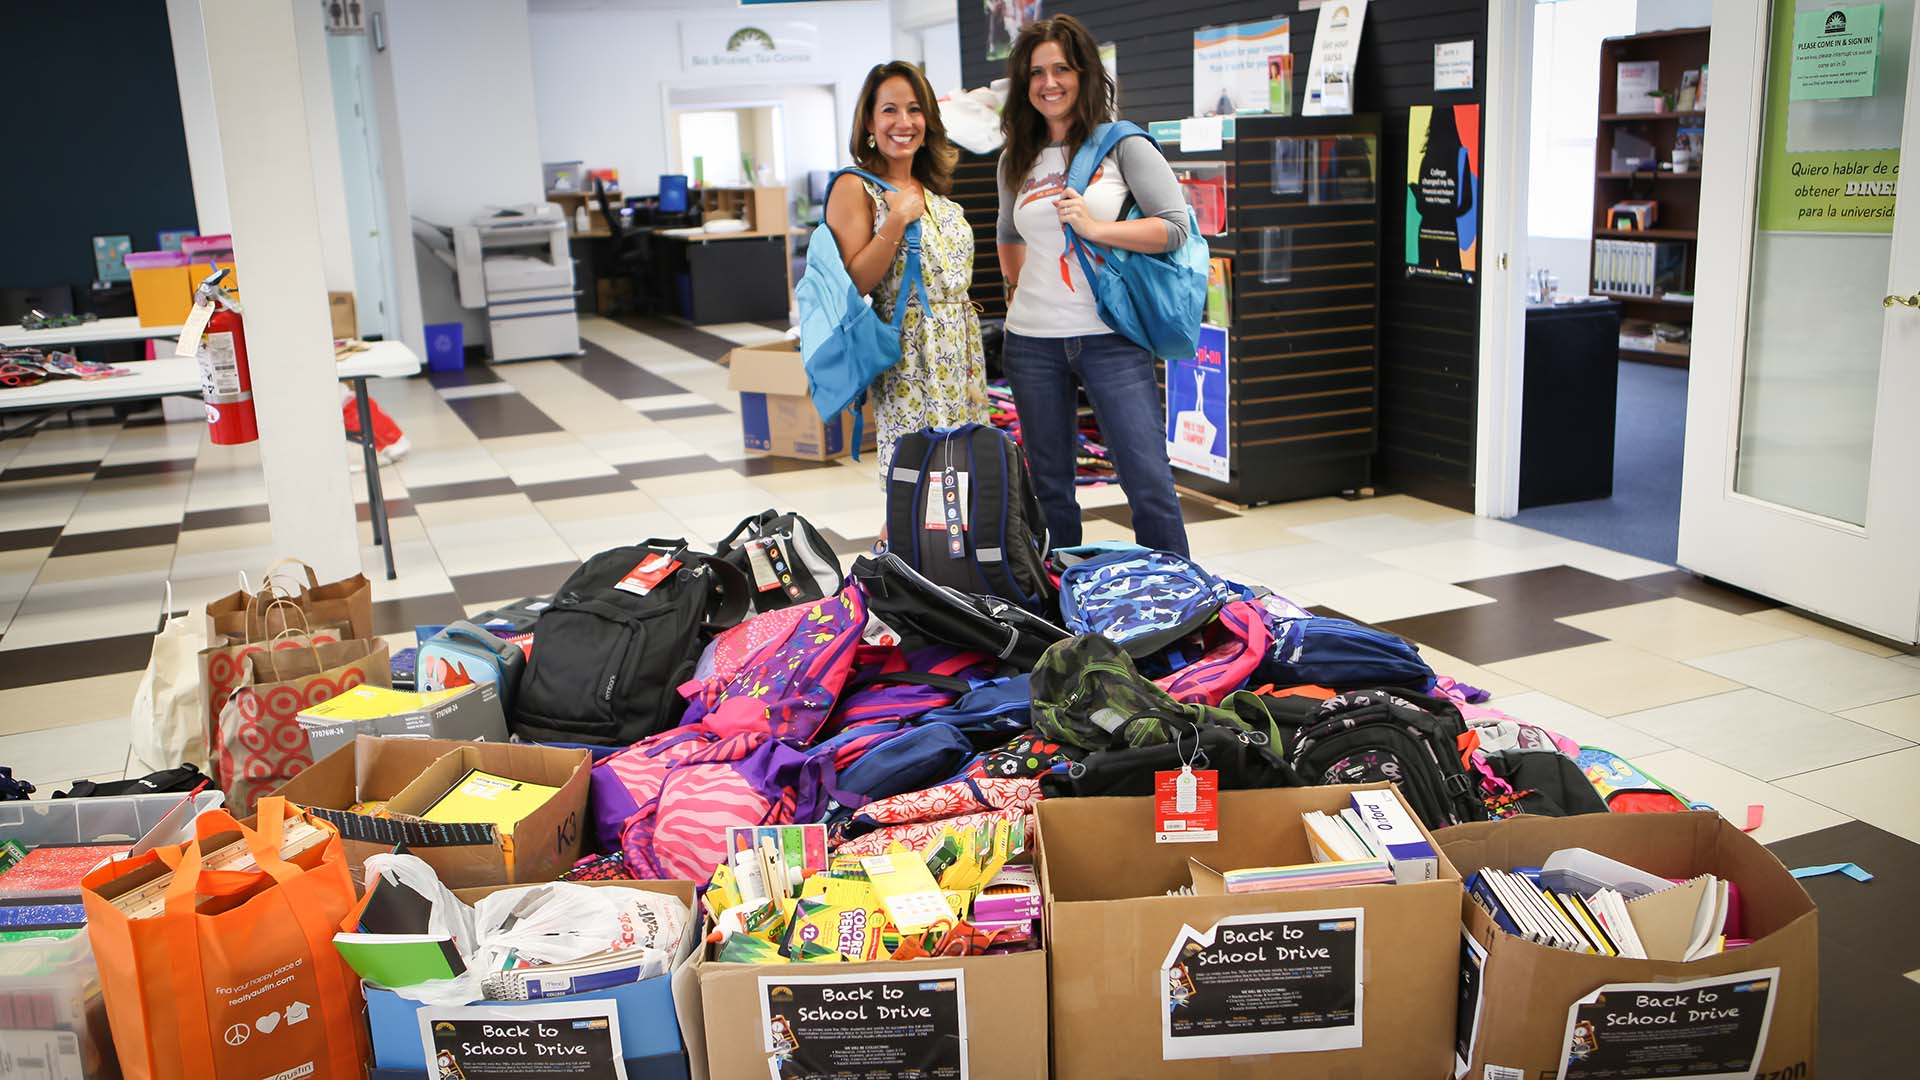 Image of Yvette Boatwright and Courtney Lepore with Realty Austin's donations